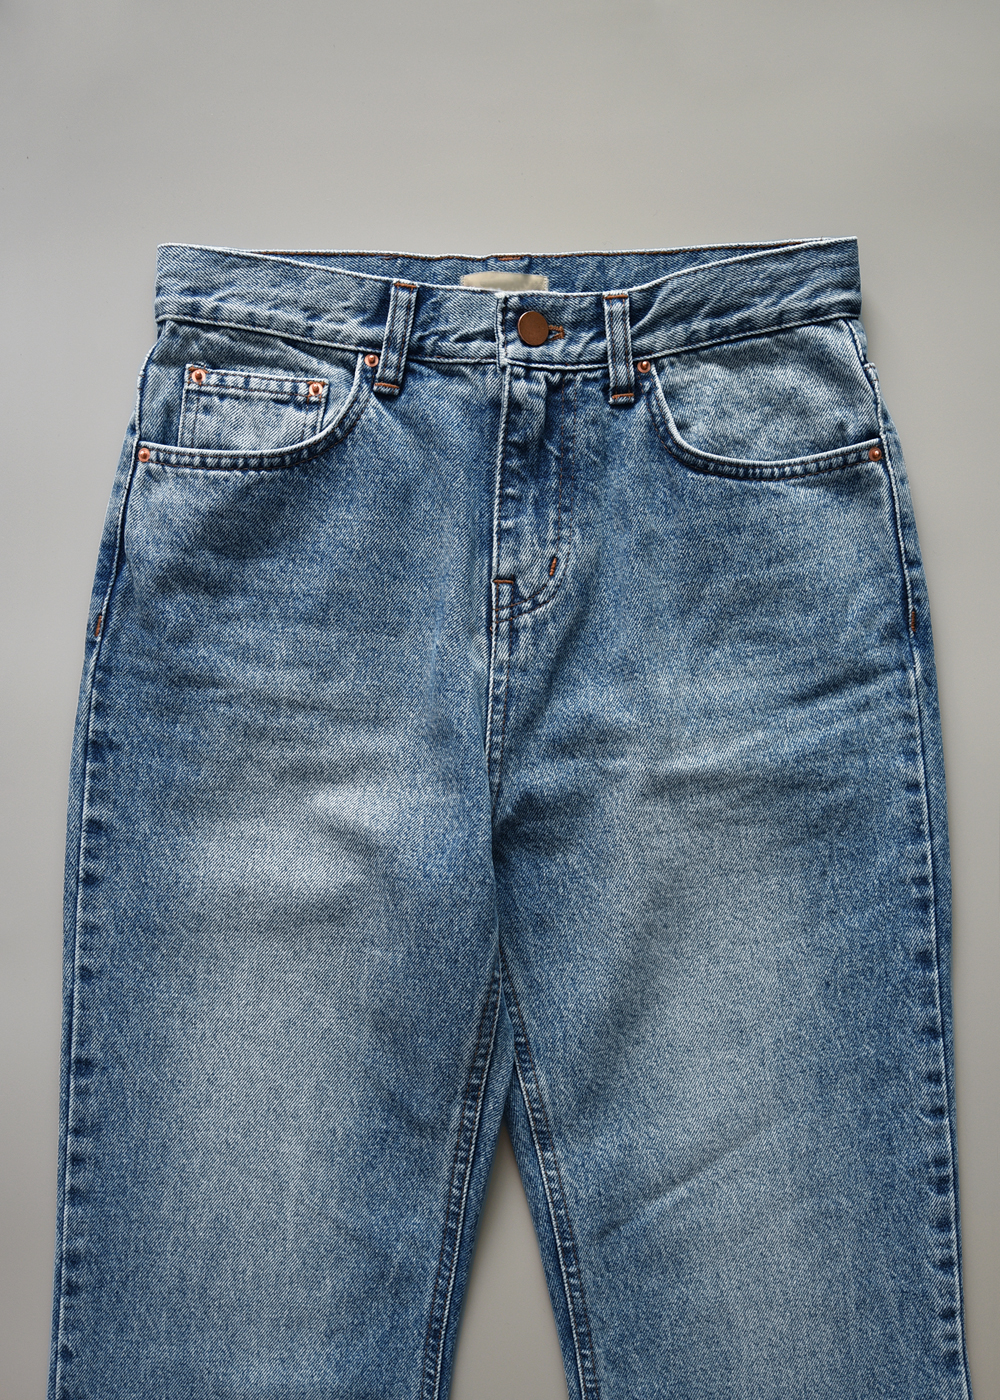 ORIGINAL DENIM